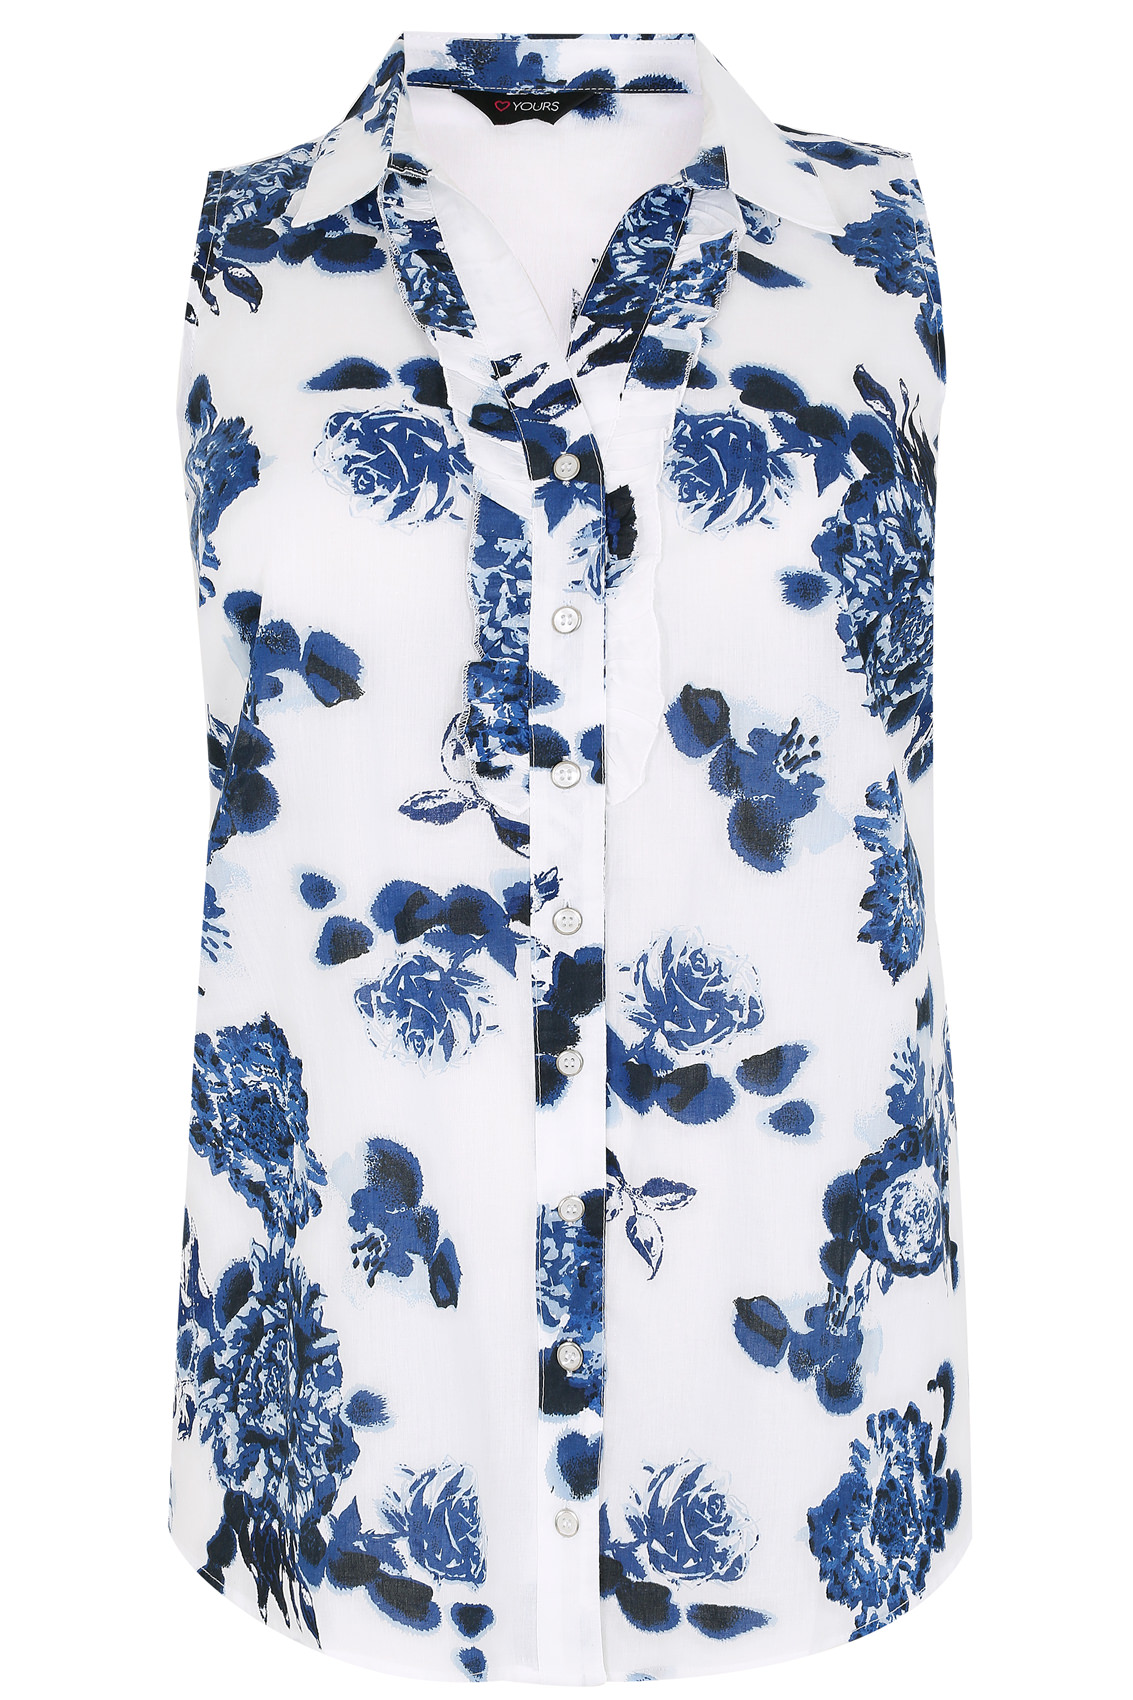 white  u0026 blue floral print sleeveless blouse with ruffle placket  plus size 16 to 36